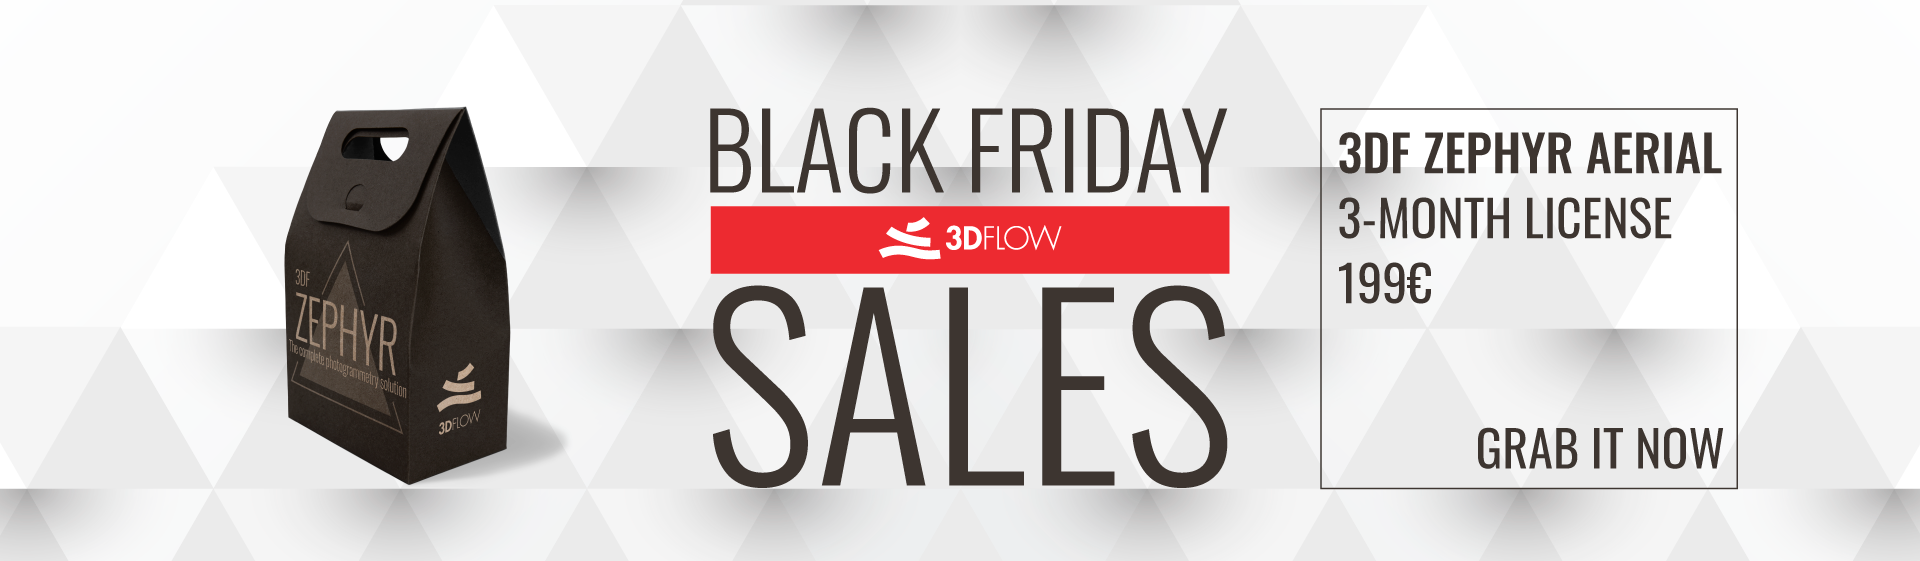 3DF Zephyr BLACK FRIDAY MADNESS!